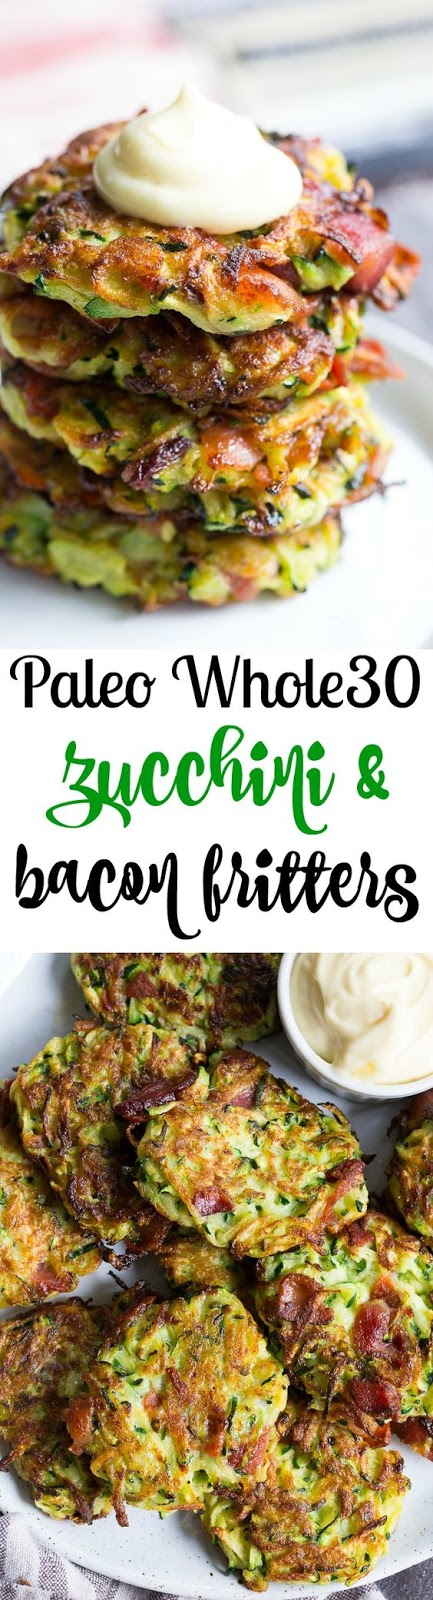 Bacon Zucchini Fritters {Paleo, Whole30} #Bacon #Zucchini #Fritters #Paleo #Whole30 #DESSERTS #HEALTHYFOOD #EASY_RECIPES #DINNER #LAUCH #DELICIOUS #EASY #HOLIDAYS #RECIPE #SPECIAL_DIET #WORLD_CUISINE #CAKE #GRILL #APPETIZERS #HEALTHY_RECIPES #DRINKS #COOKING_METHOD #ITALIAN_RECIPES #MEAT #VEGAN_RECIPES #COOKIES #PASTA #FRUIT #SALAD #SOUP_APPETIZERS #NON_ALCOHOLIC_DRINKS #MEAL_PLANNING #VEGETABLES #SOUP #PASTRY #CHOCOLATE #DAIRY #ALCOHOLIC_DRINKS #BULGUR_SALAD #BAKING #SNACKS #BEEF_RECIPES #MEAT_APPETIZERS #MEXICAN_RECIPES #BREAD #ASIAN_RECIPES #SEAFOOD_APPETIZERS #MUFFINS #BREAKFAST_AND_BRUNCH #CONDIMENTS #CUPCAKES #CHEESE #CHICKEN_RECIPES #PIE #COFFEE #NO_BAKE_DESSERTS #HEALTHY_SNACKS #SEAFOOD #GRAIN #LUNCHES_DINNERS #MEXICAN #QUICK_BREAD #LIQUOR